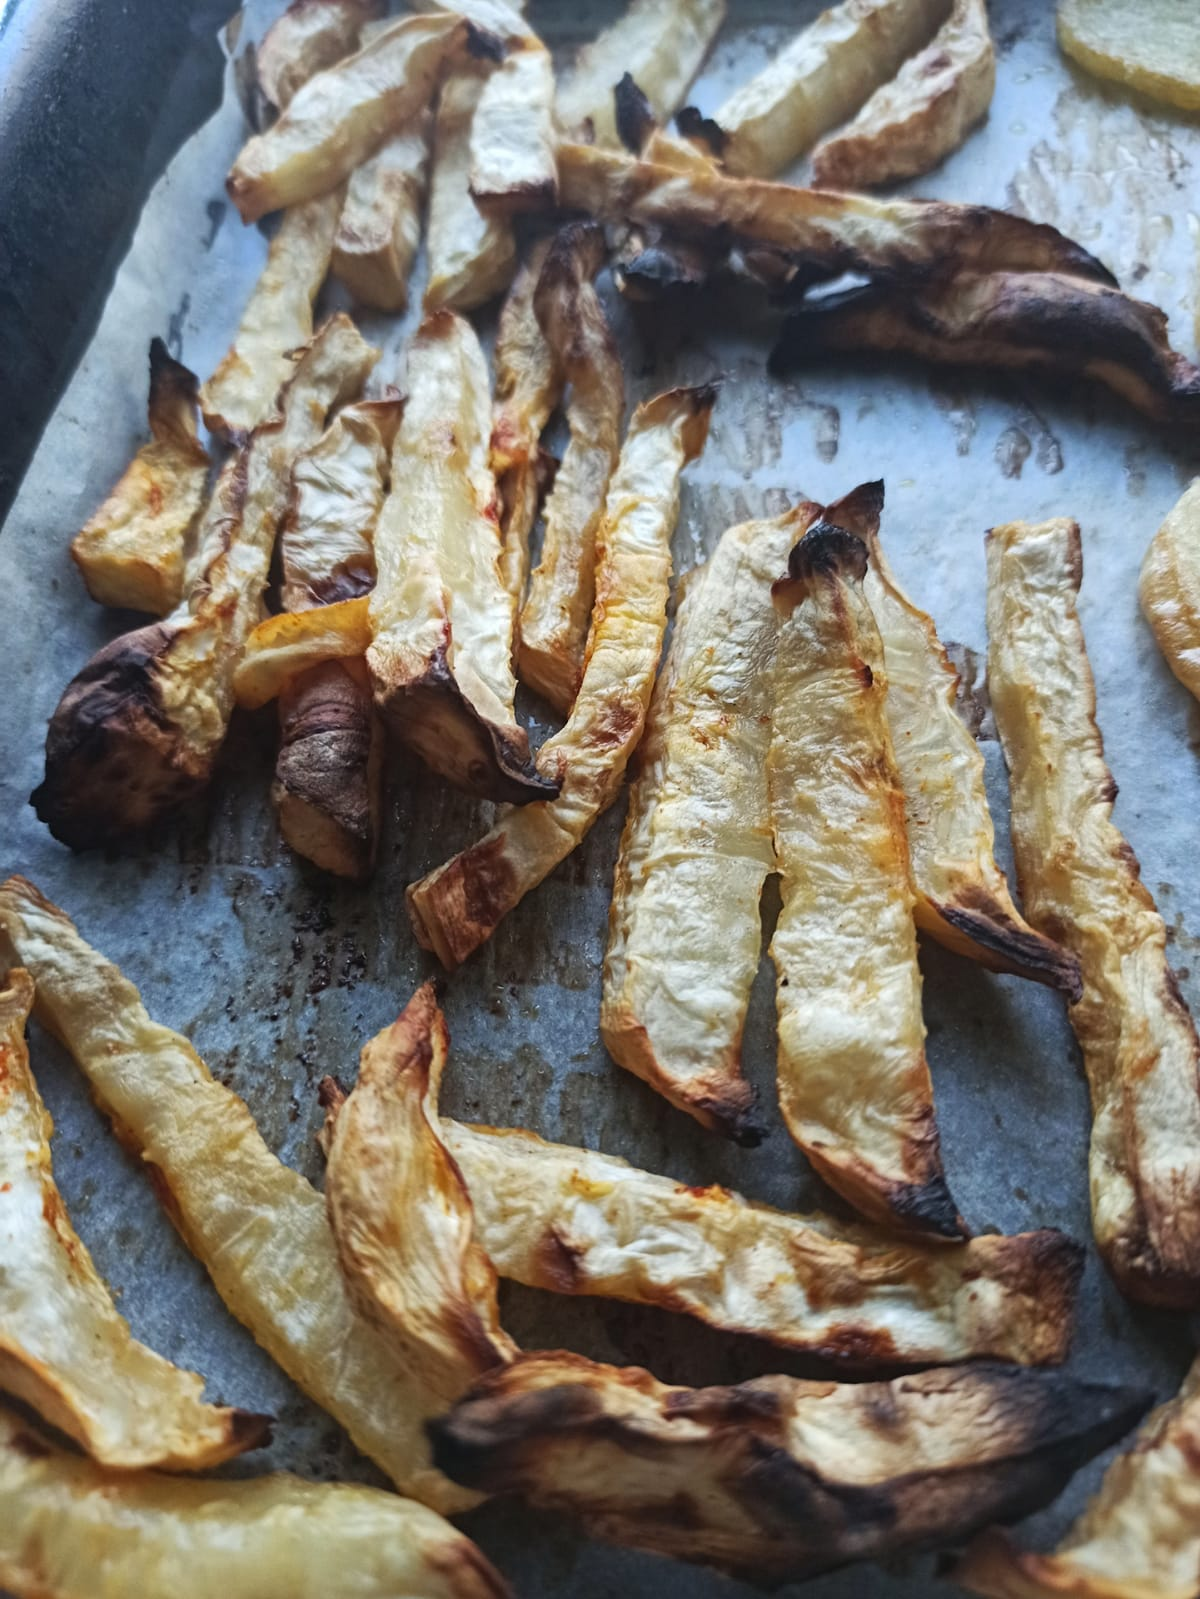 American-style hot dogs with celery root fries vegan